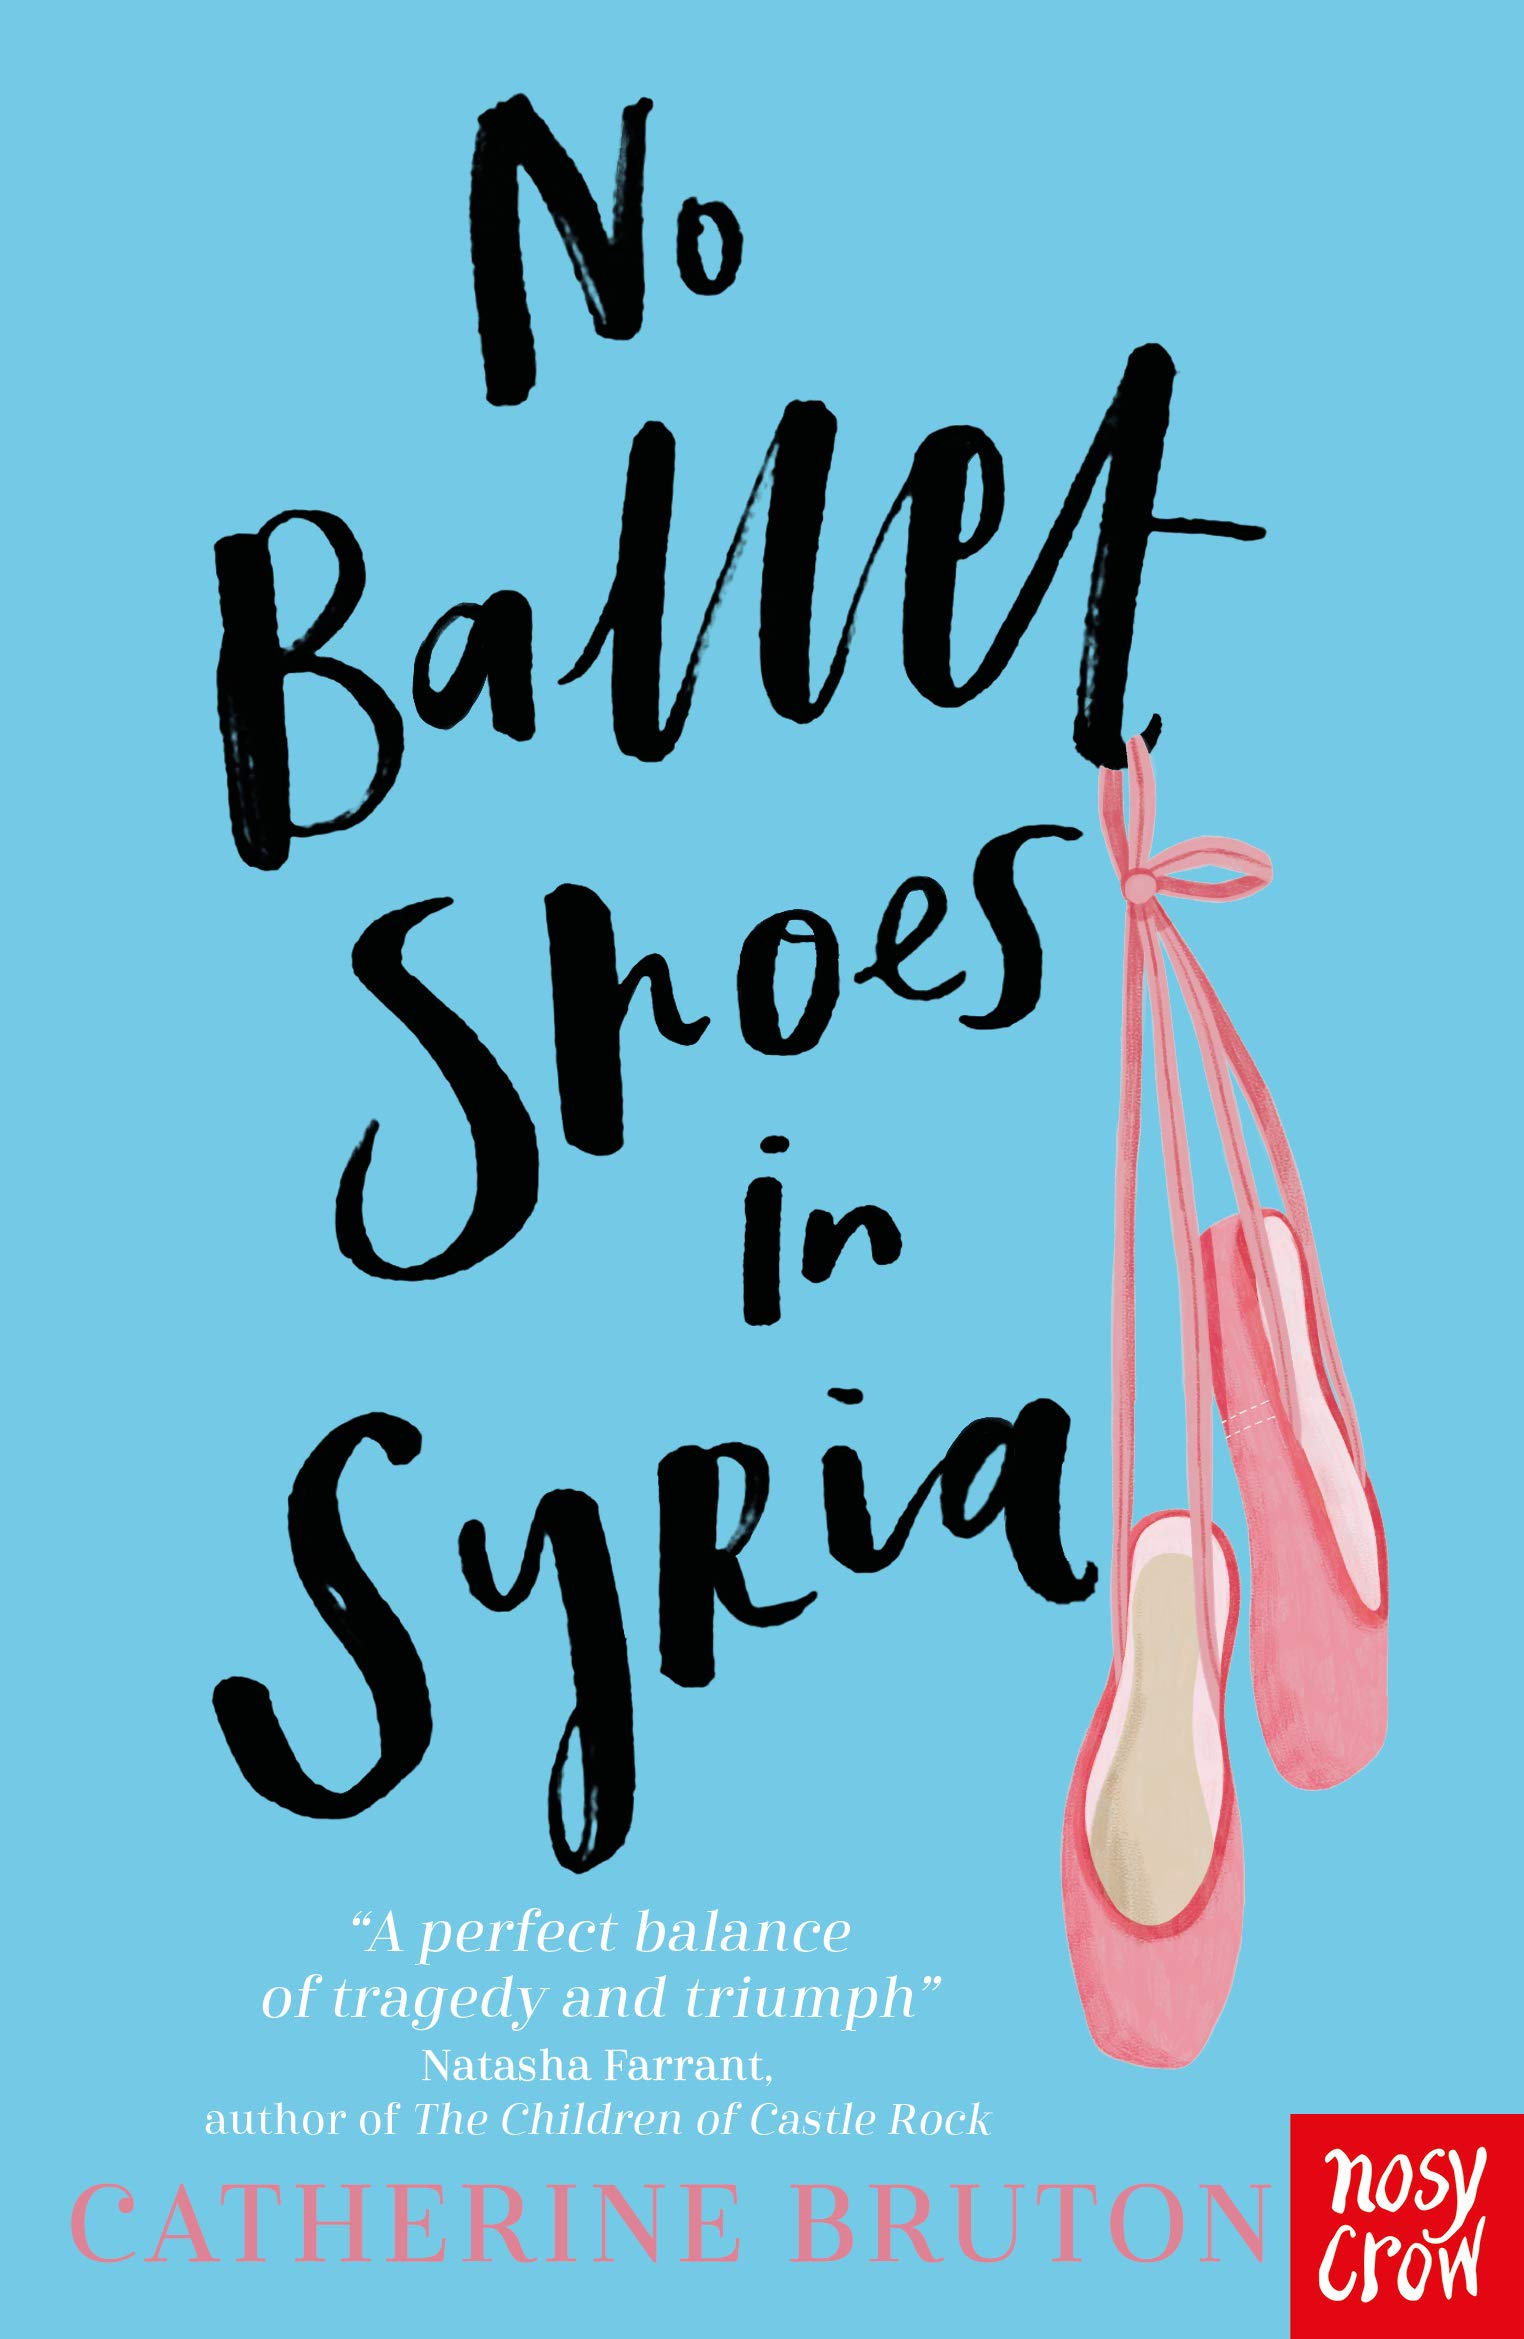 No Ballet Shoes in Syria: Amazon.co.uk: Catherine Bruton: Books